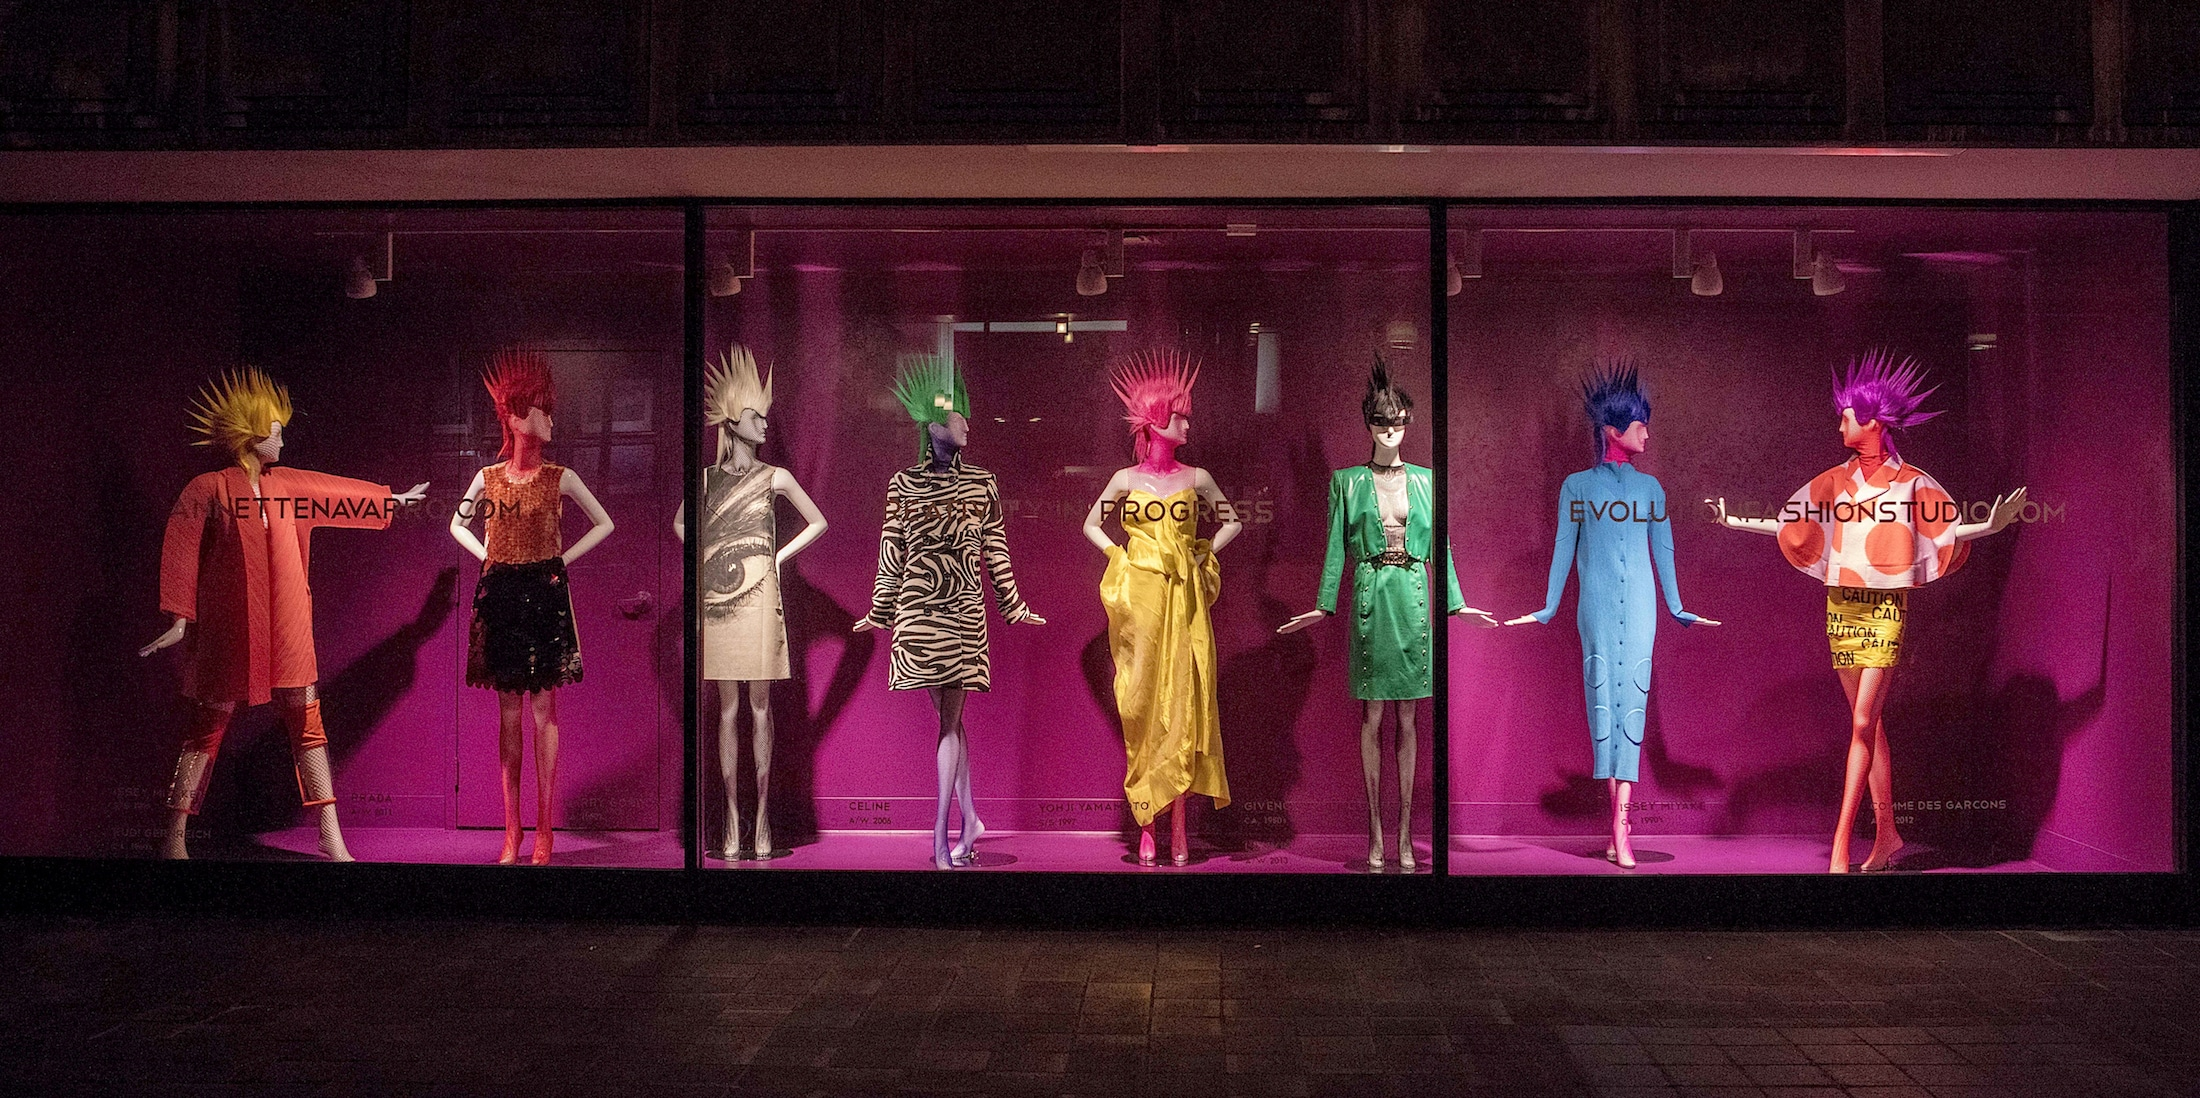 Looks by PRADA, CELINE, GIVENCHY, ISSEY MIYAKE and others in an Evolution window display at the Gidding-Jenny building, in downtown Cincinnati.